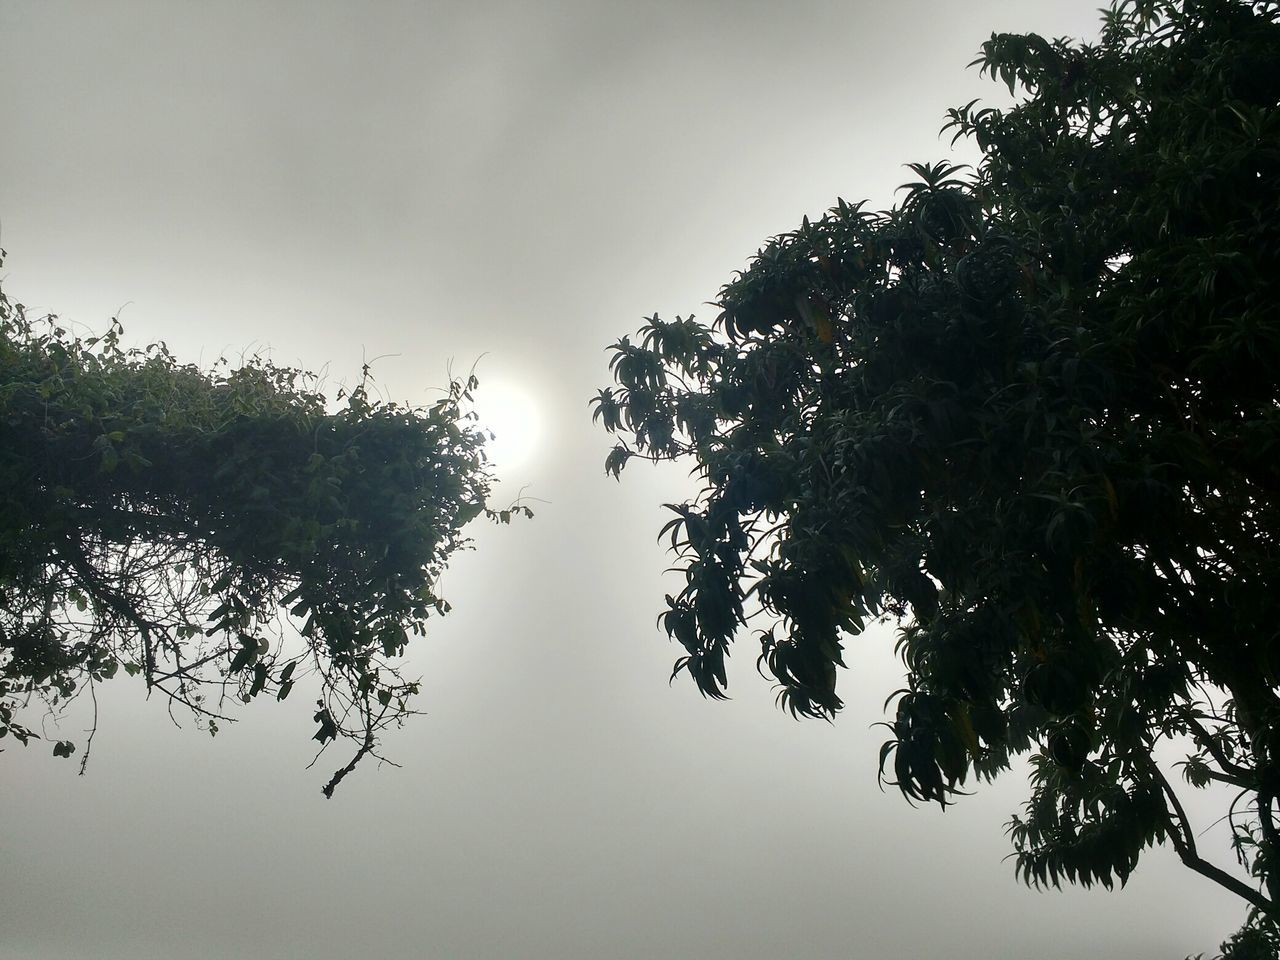 tree, nature, beauty in nature, growth, no people, low angle view, sky, tranquility, outdoors, tranquil scene, branch, day, scenics, leaf, plant, clear sky